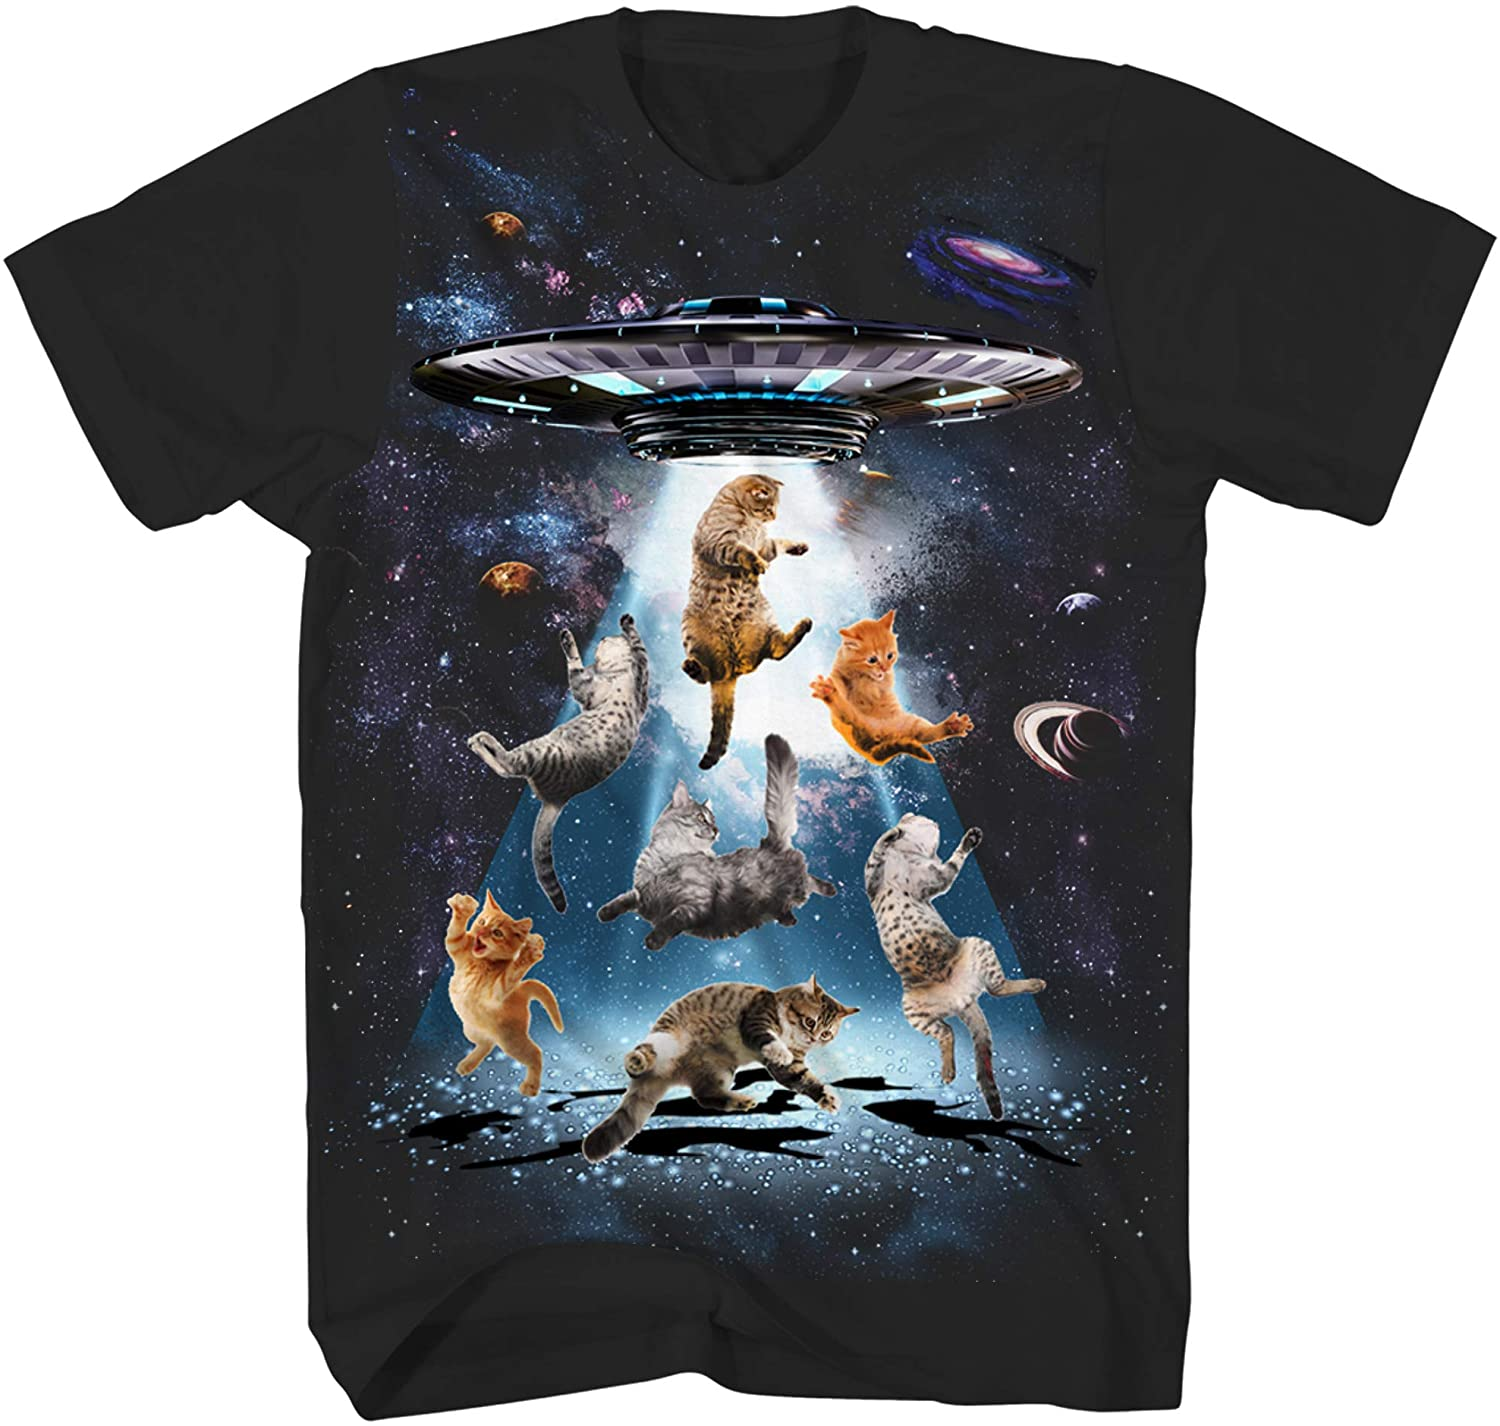 UFO Cats Kitten Cat Lover Outerspace Planets Stars Galaxy Funny Humor Pun Adult Tee Graphic T-Shirt for Men Tshirt